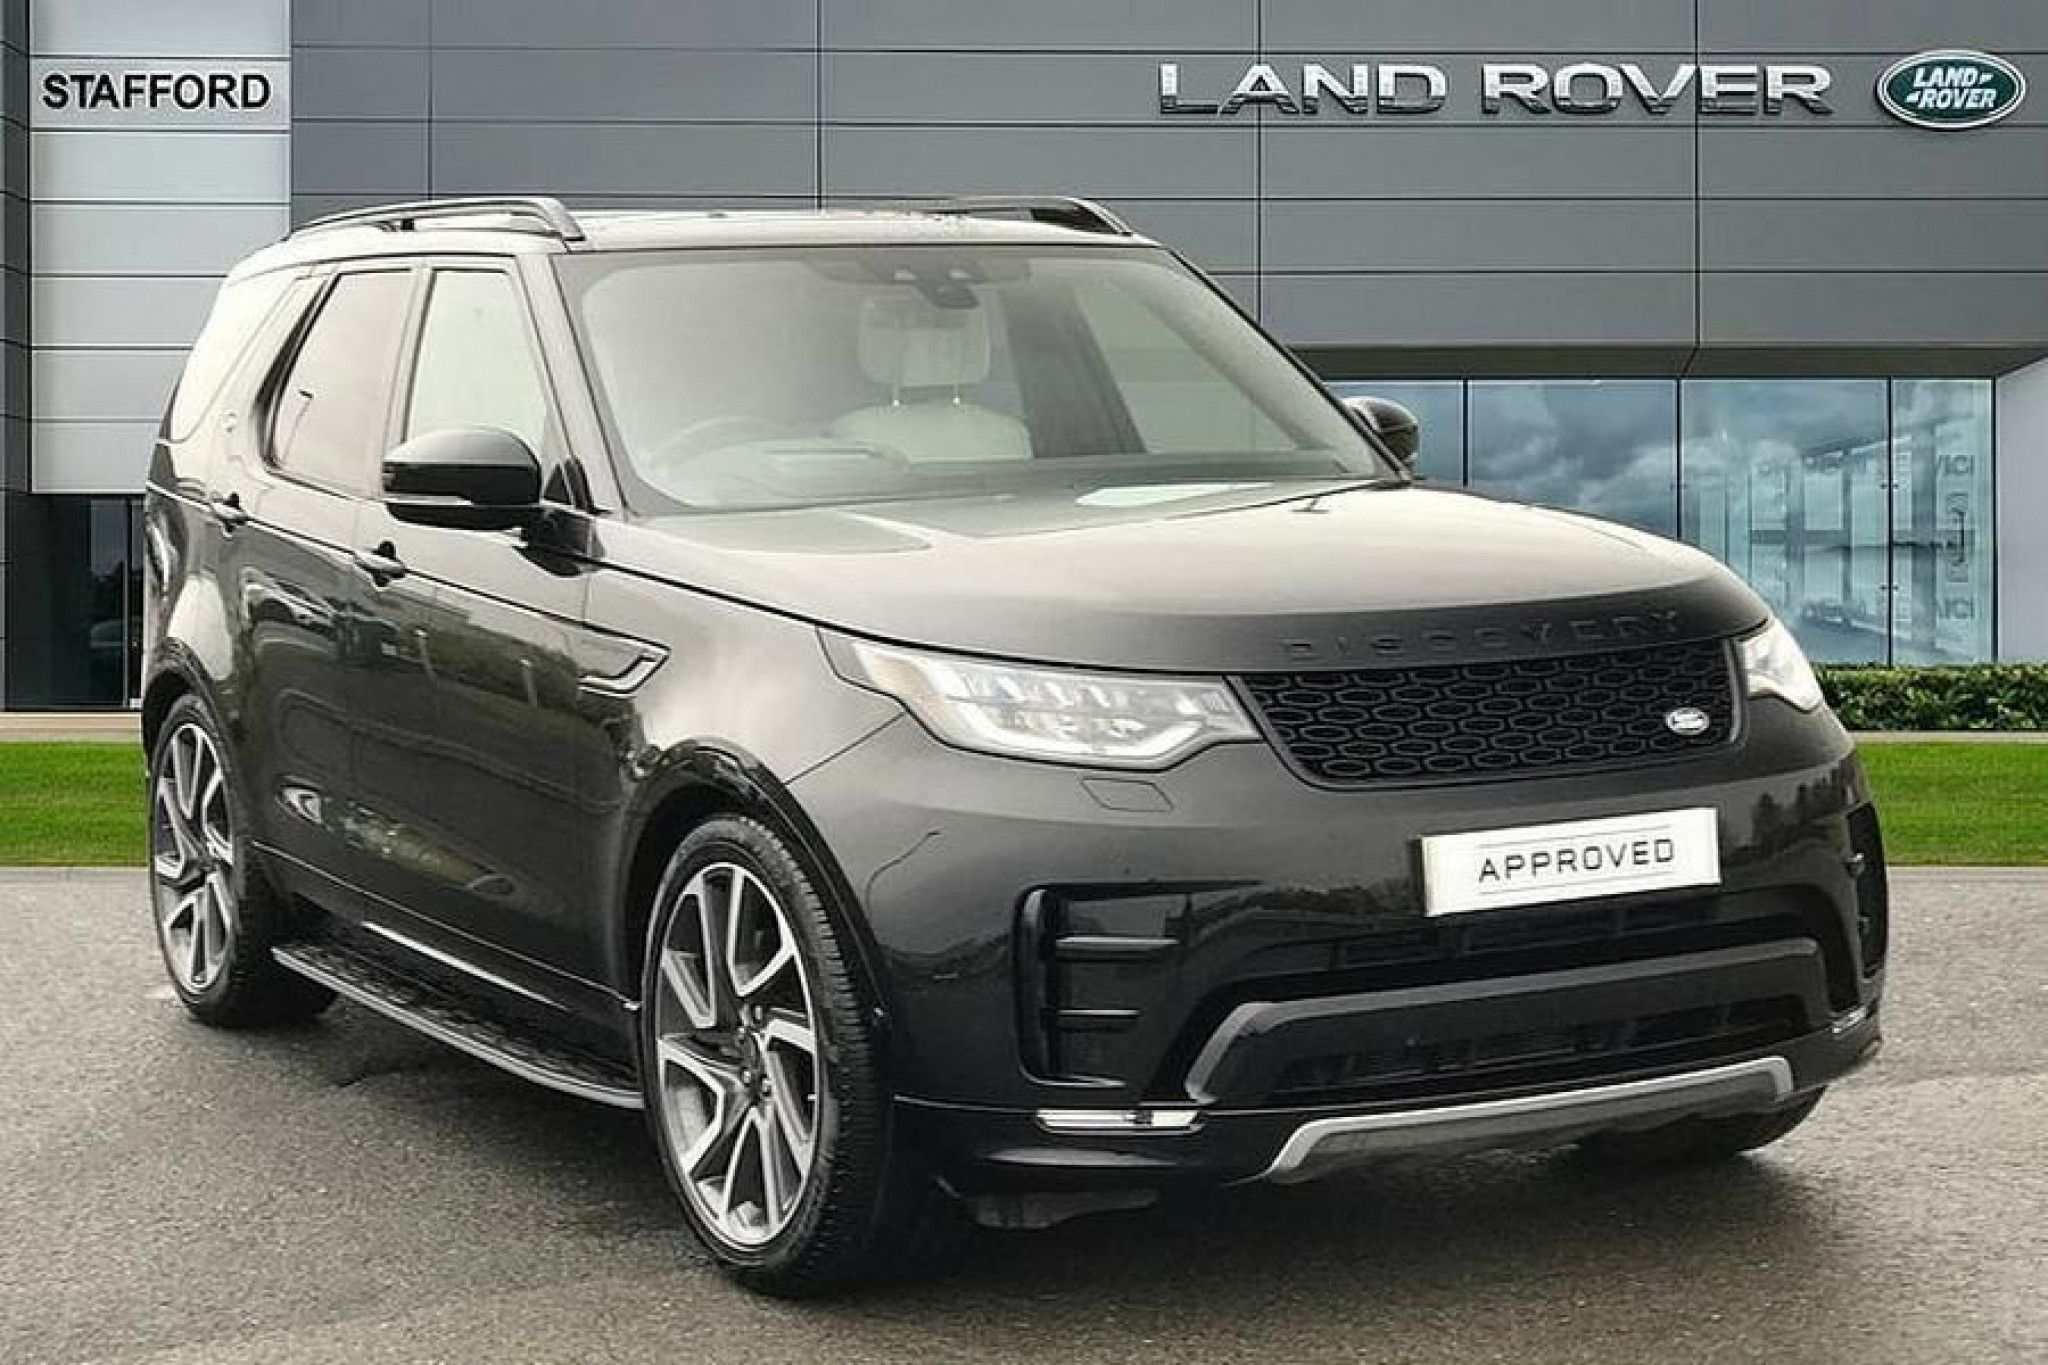 39 Discovery Ideas Land Rover Land Rover Discovery Fit